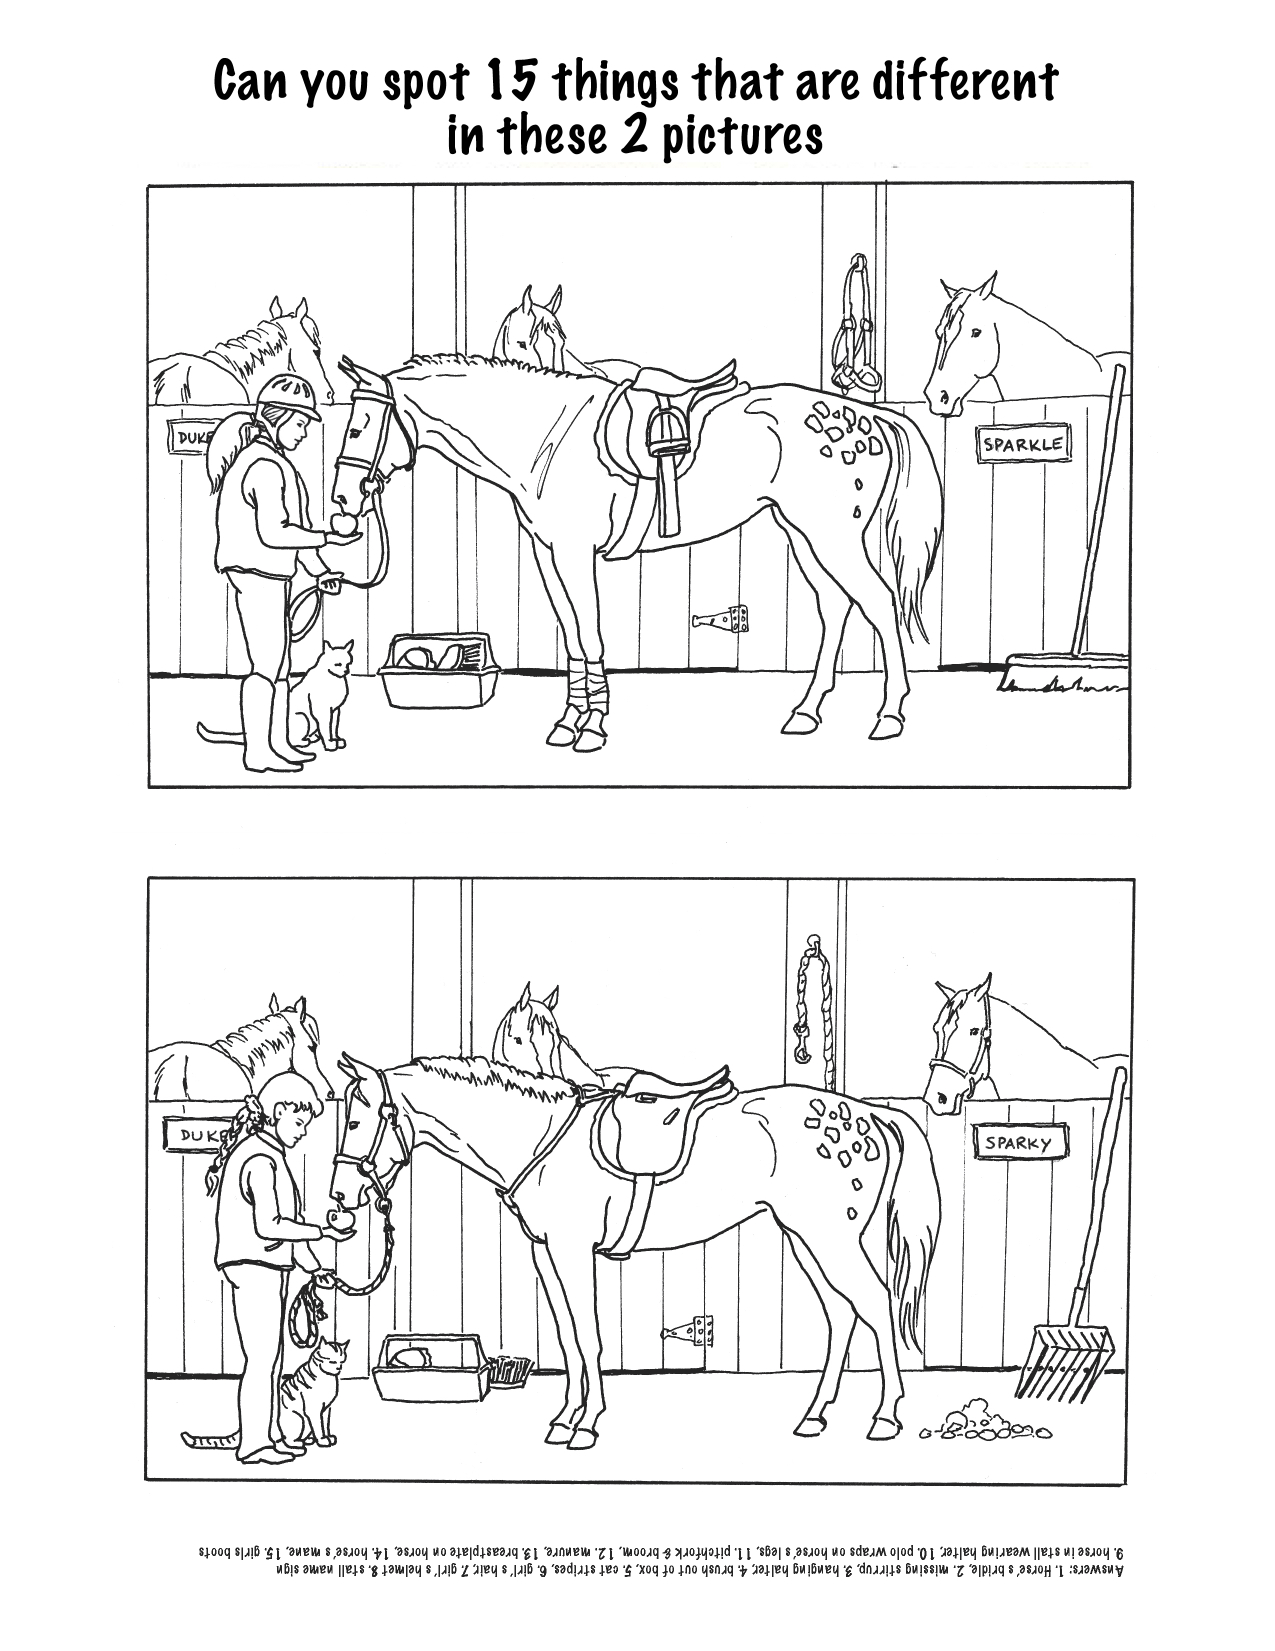 14 Best Images Of Spot The Difference Worksheets For Adults